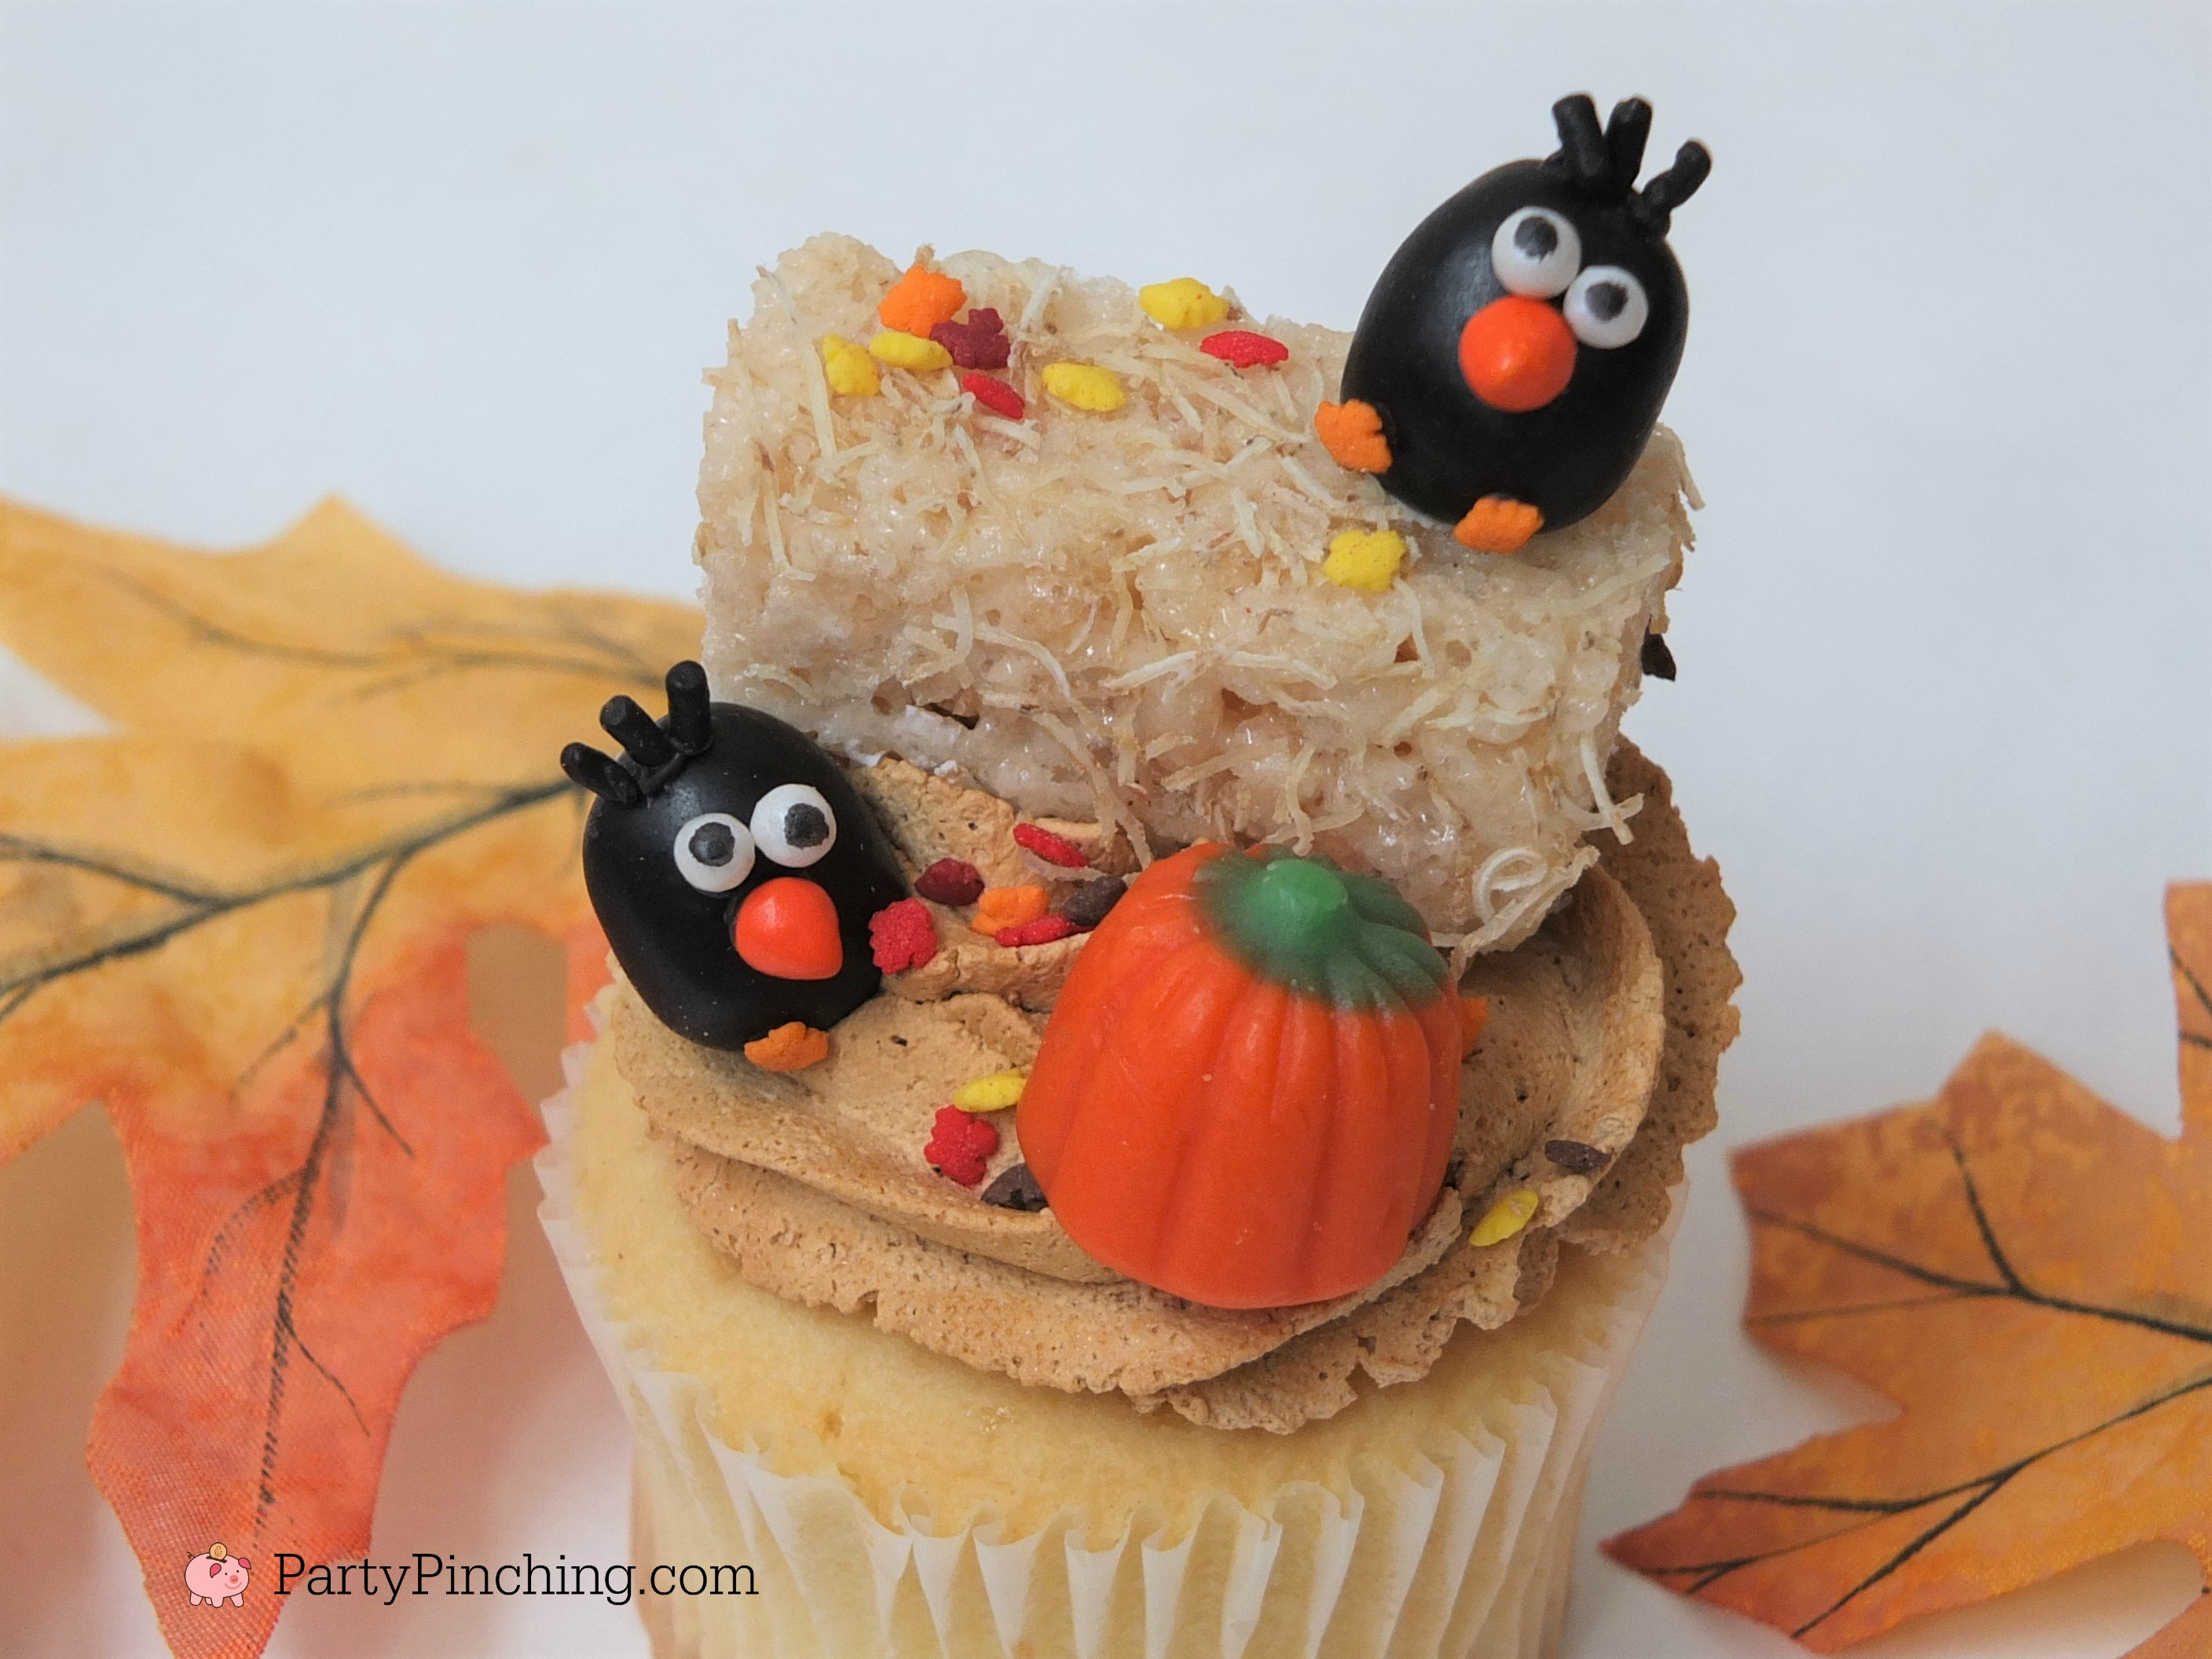 crow cupcakes, adorable autumn fall cupcakes, jelly bean crows, cute food, fun food for kids, hay bale cupcakes rice krispie haybales with leaf sprinkles, ask for whipped, caramel whipped icing frosting, harvest party ideas, thanksgiving cute dessert